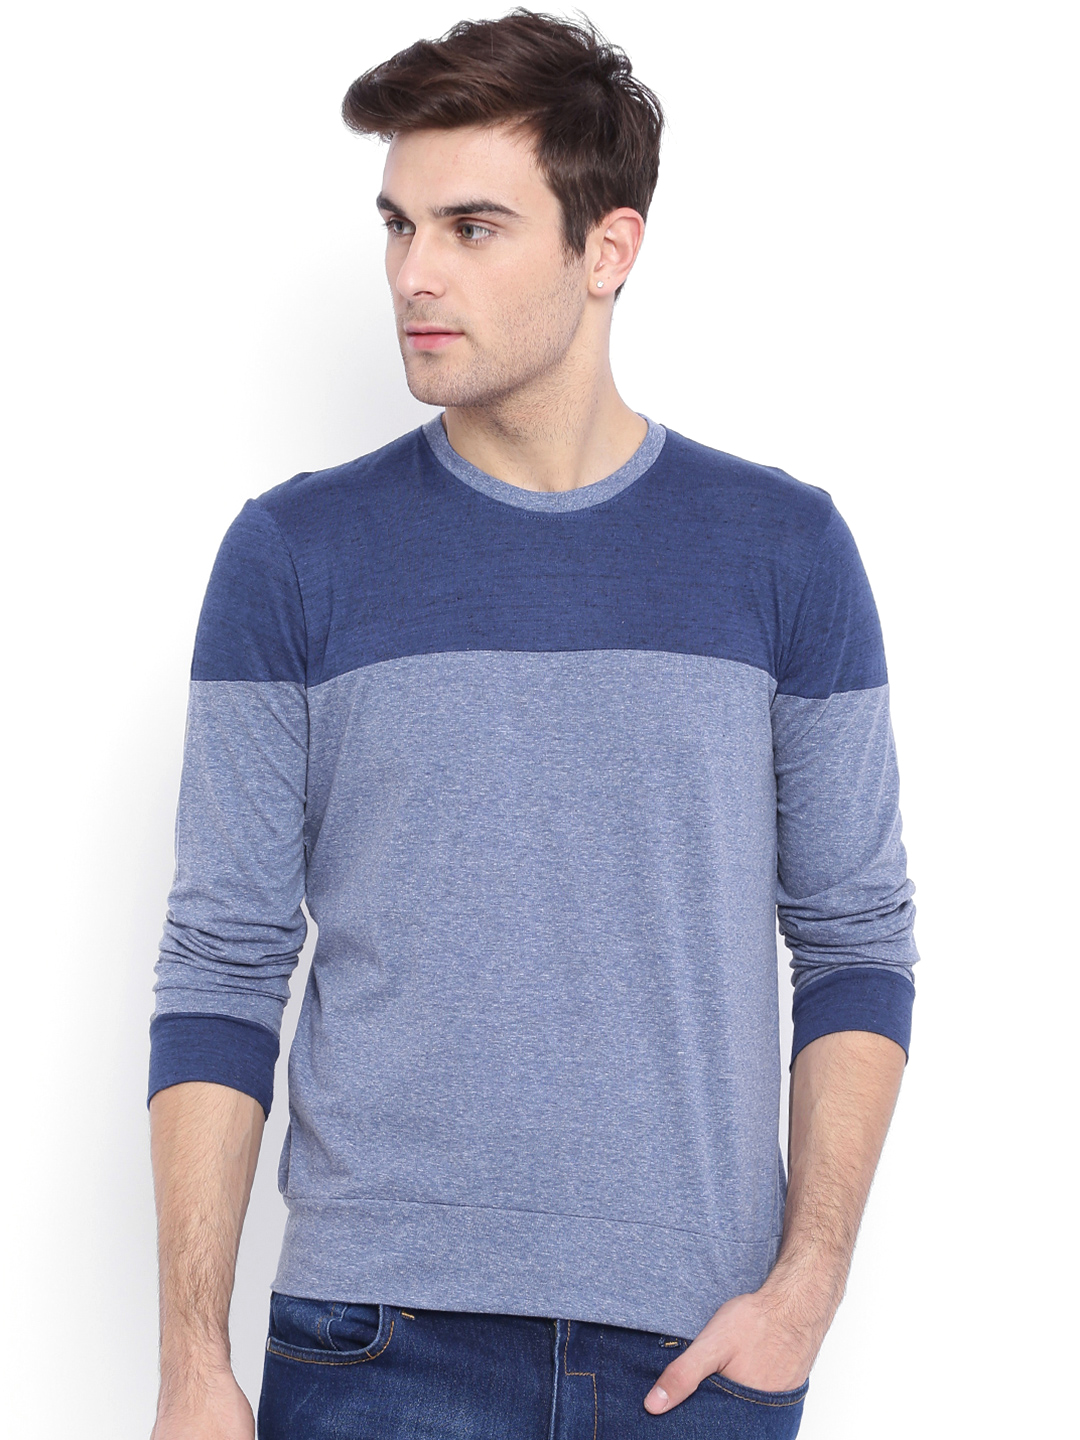 What to pair with mens tshirts for Tahari t shirt mens